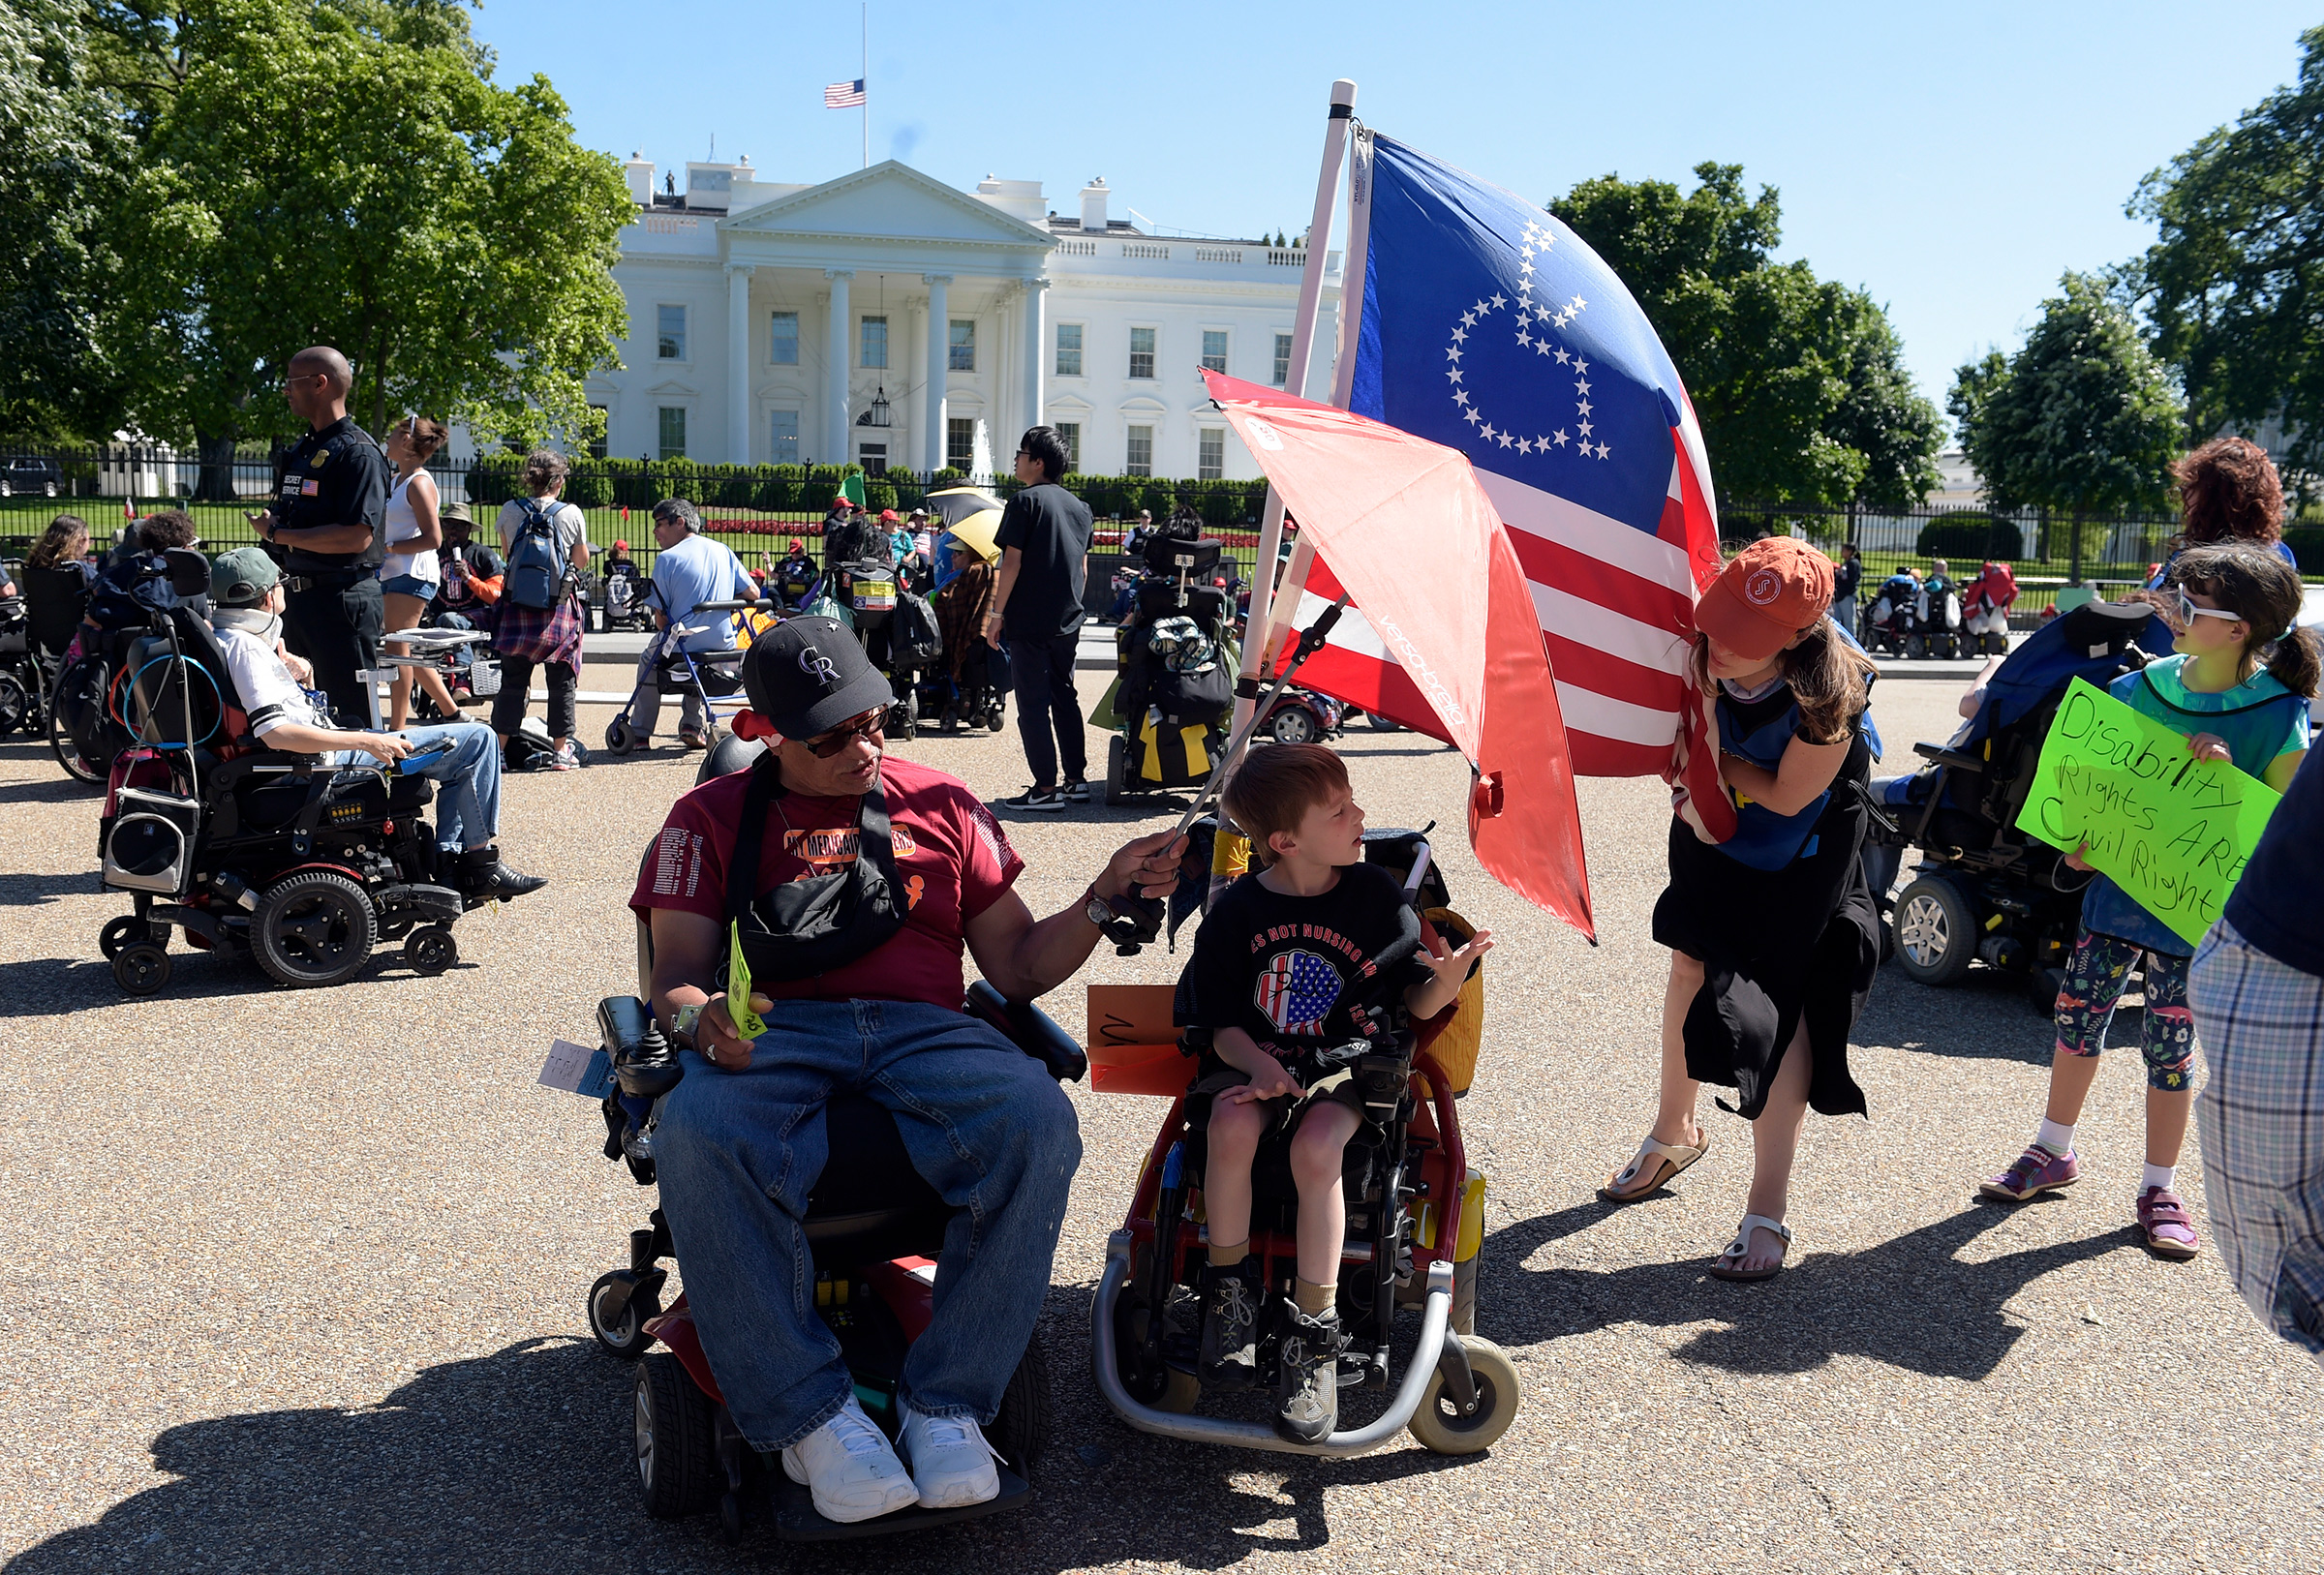 Protesters supporting people with disabilities gather outside the White House in Washington, May 15, 2017